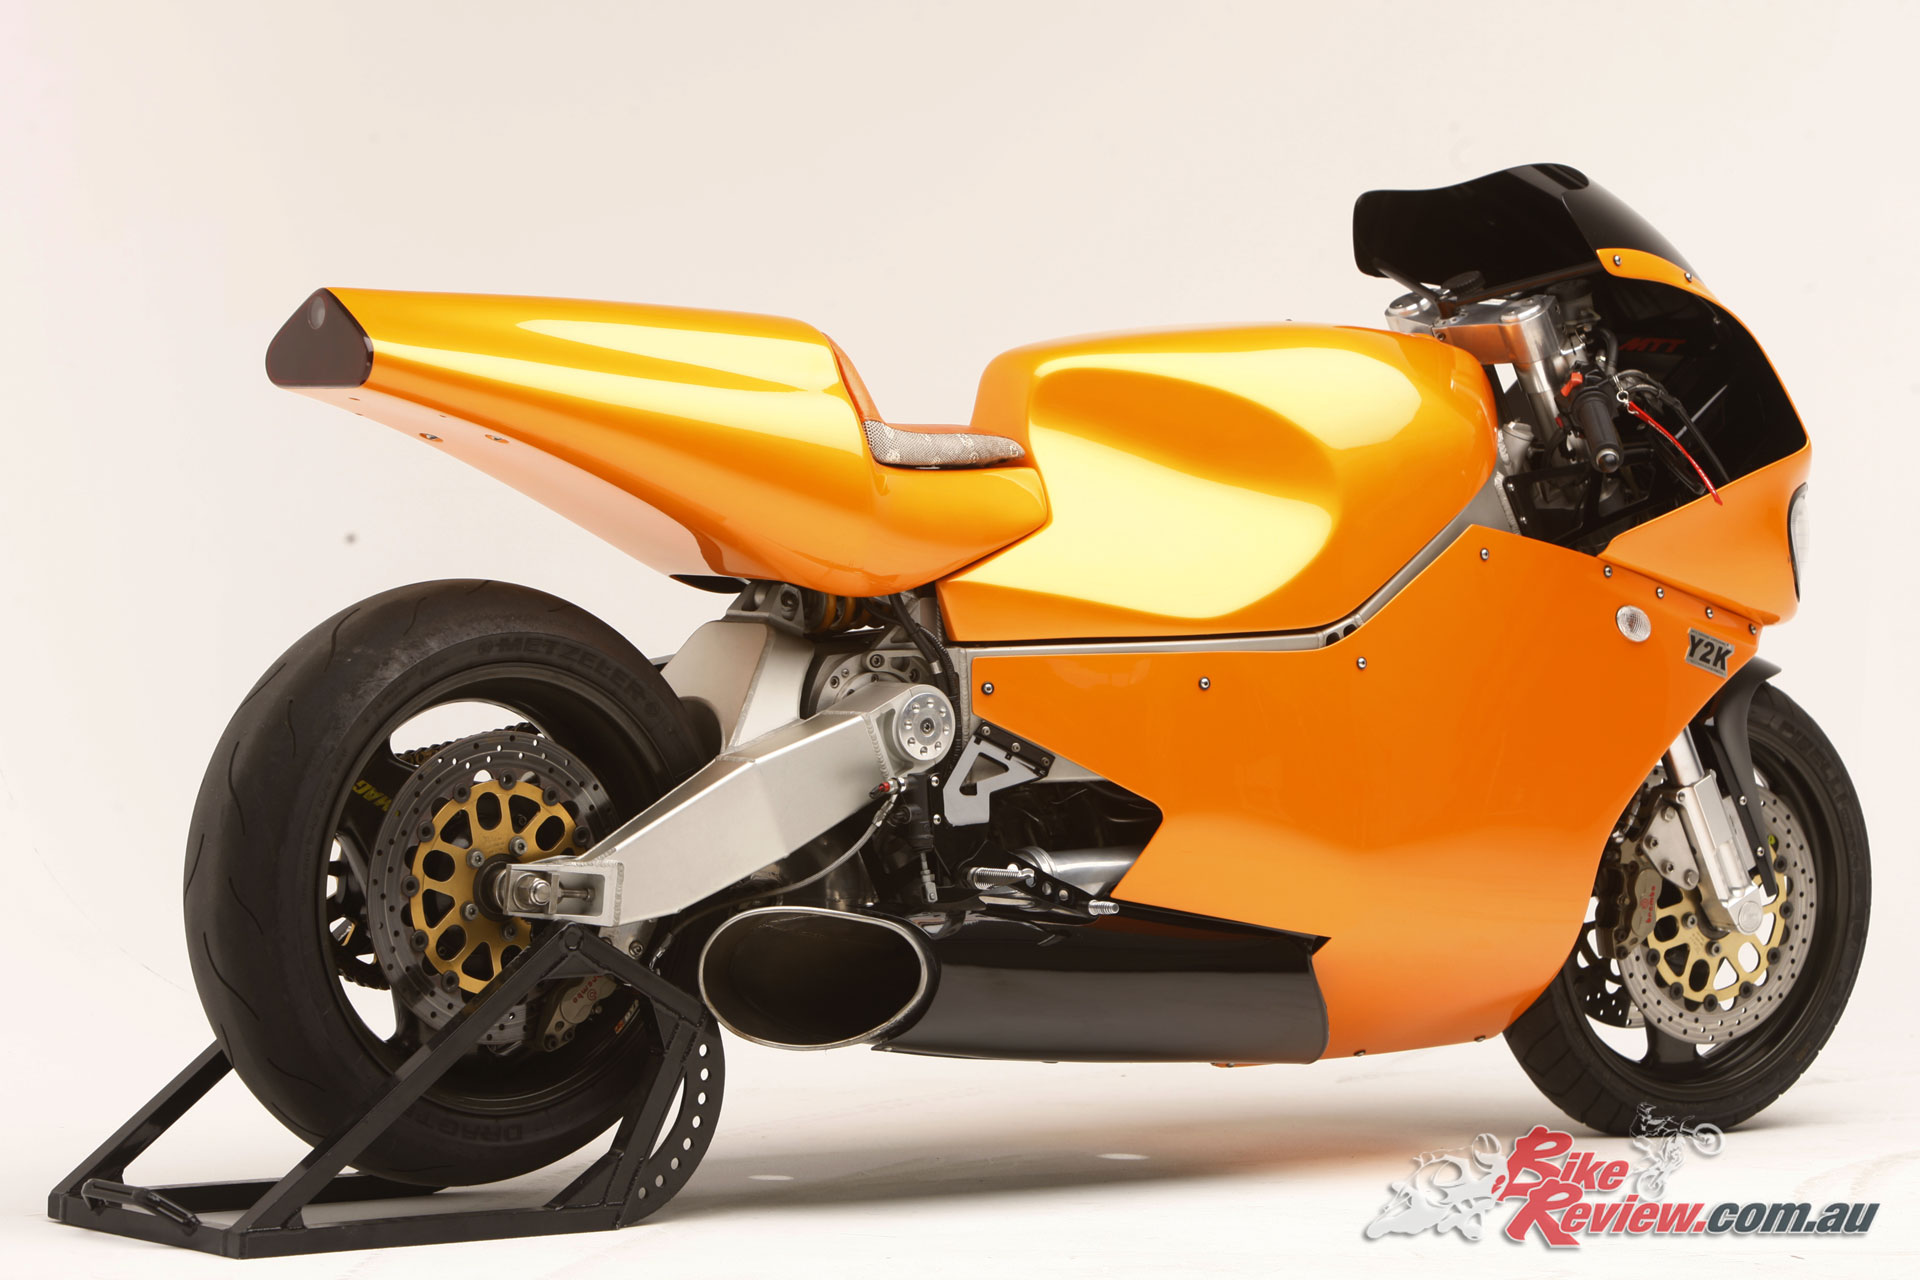 With a price tag of $185,000USD the Y2K is not for the weak hearted in any regard